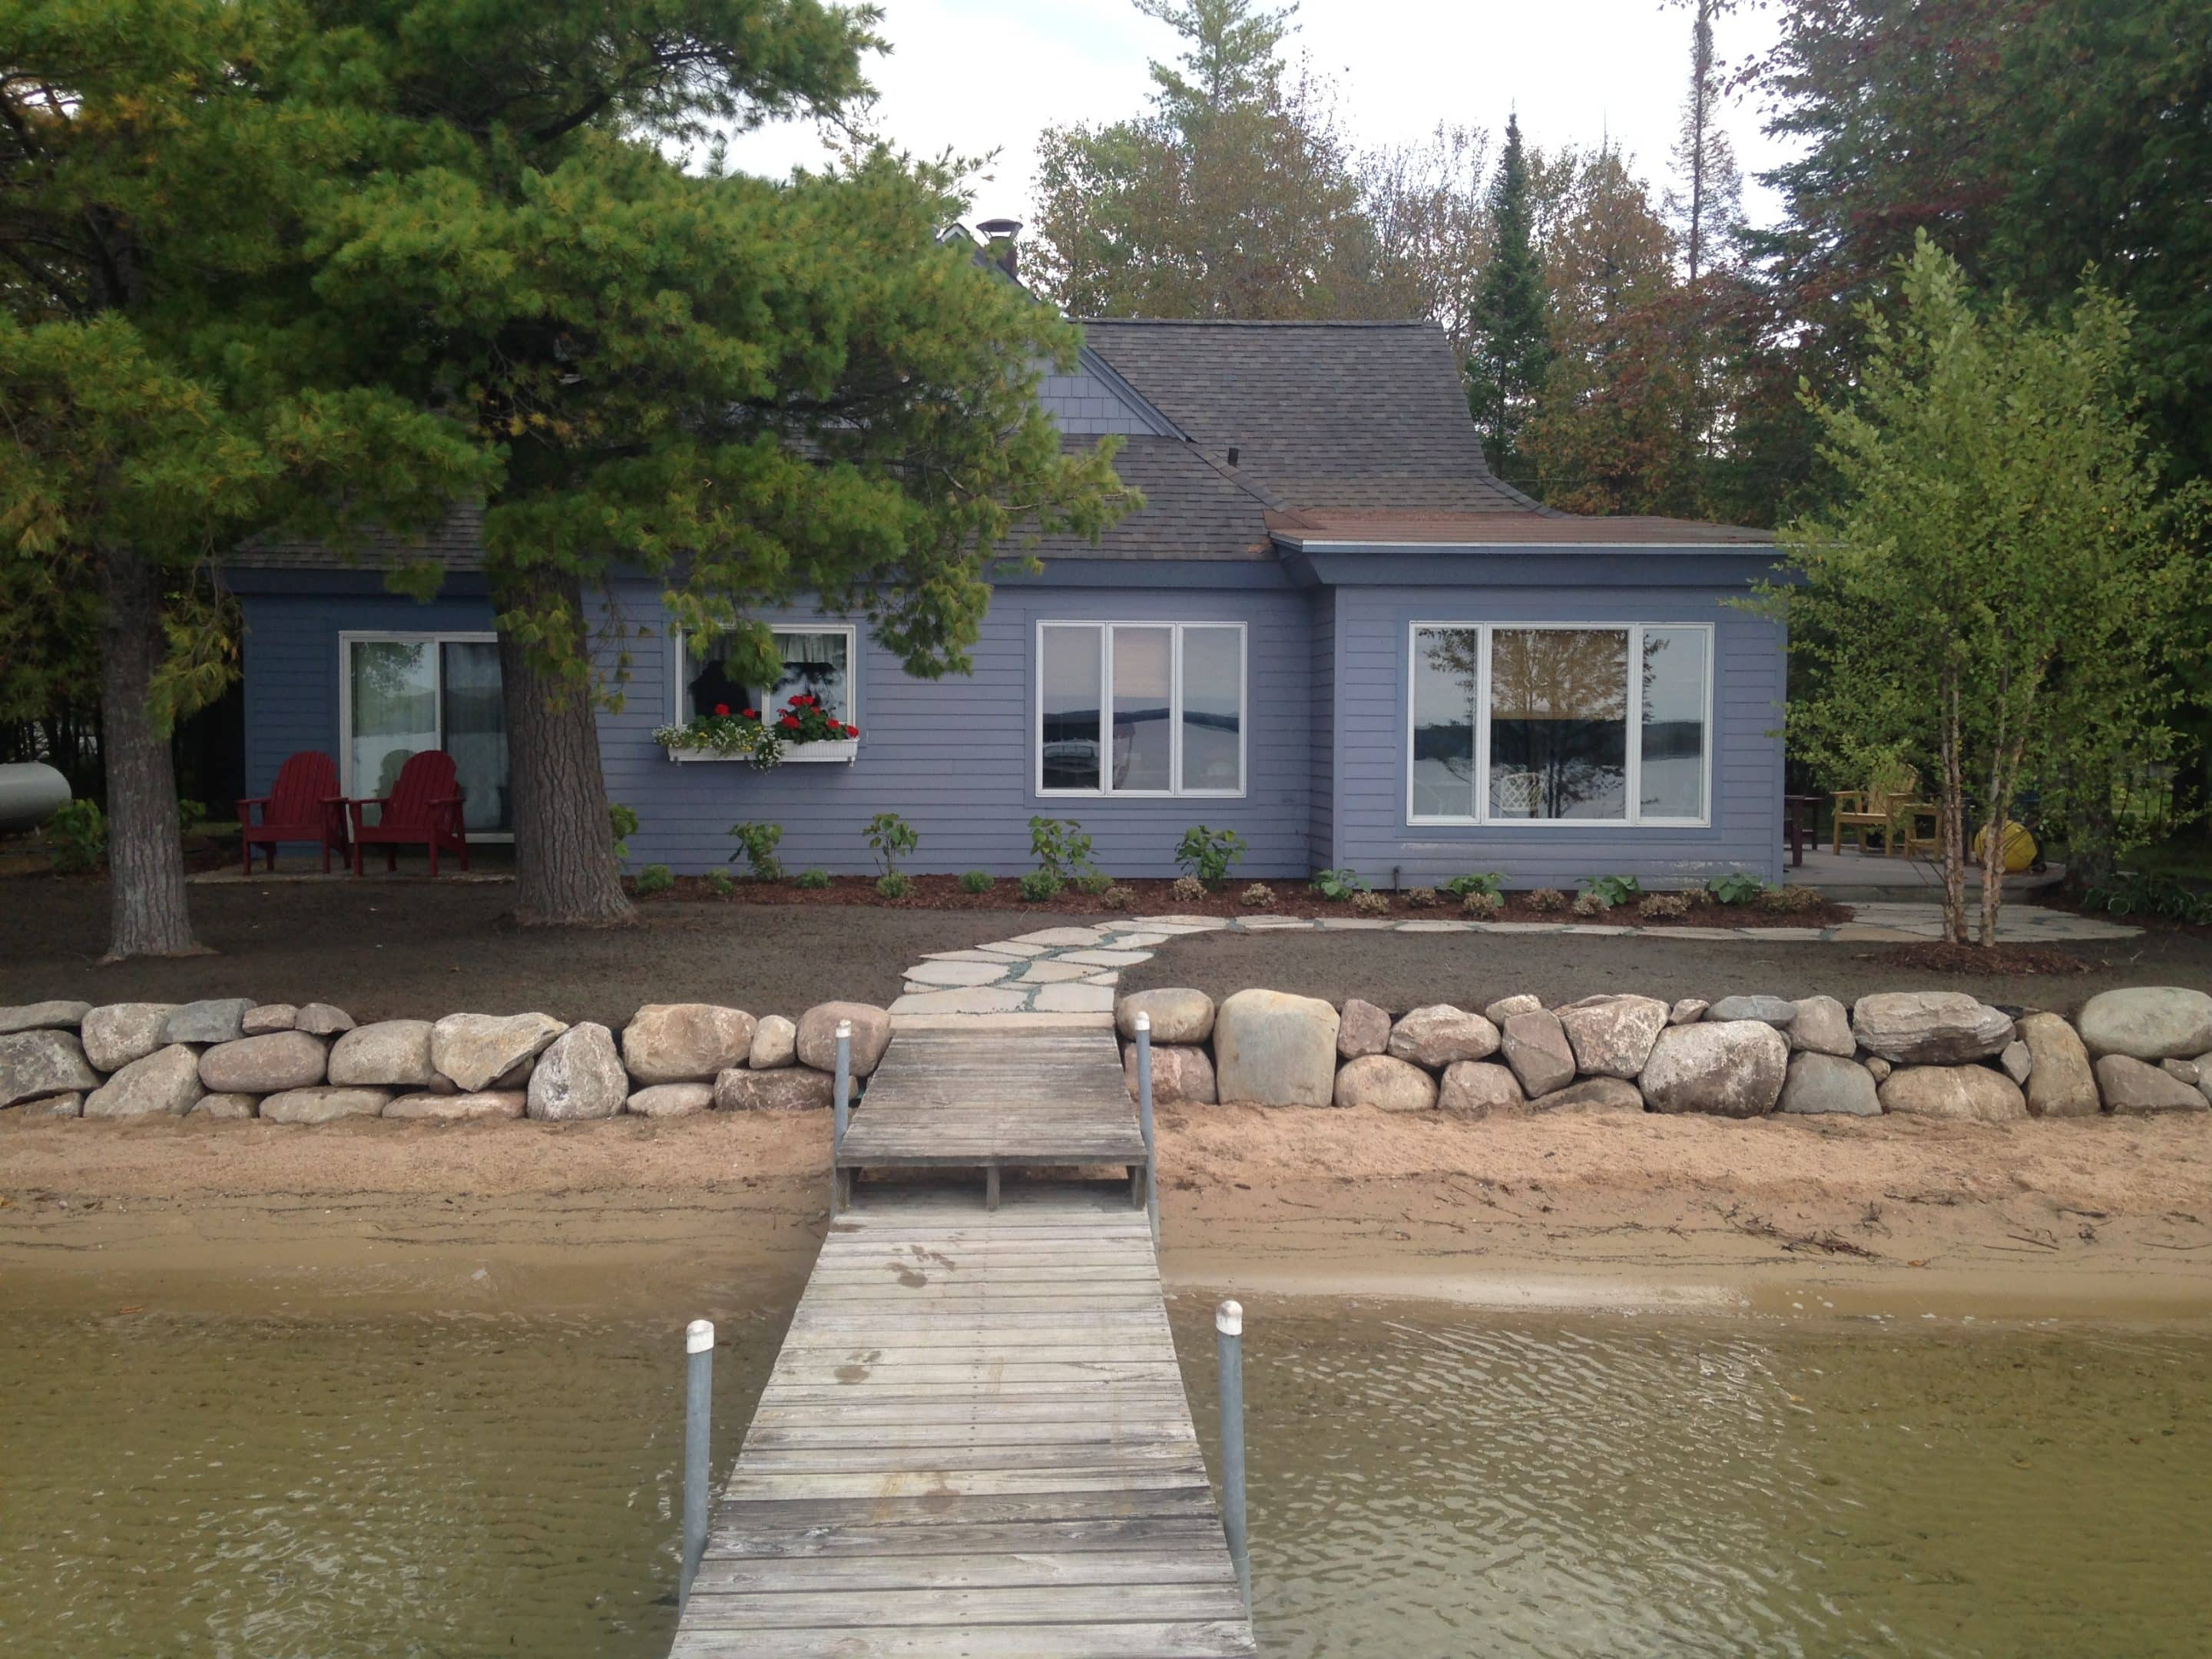 stone shoreline installation protects this property and stands out from the neighbors - viewed from a dock